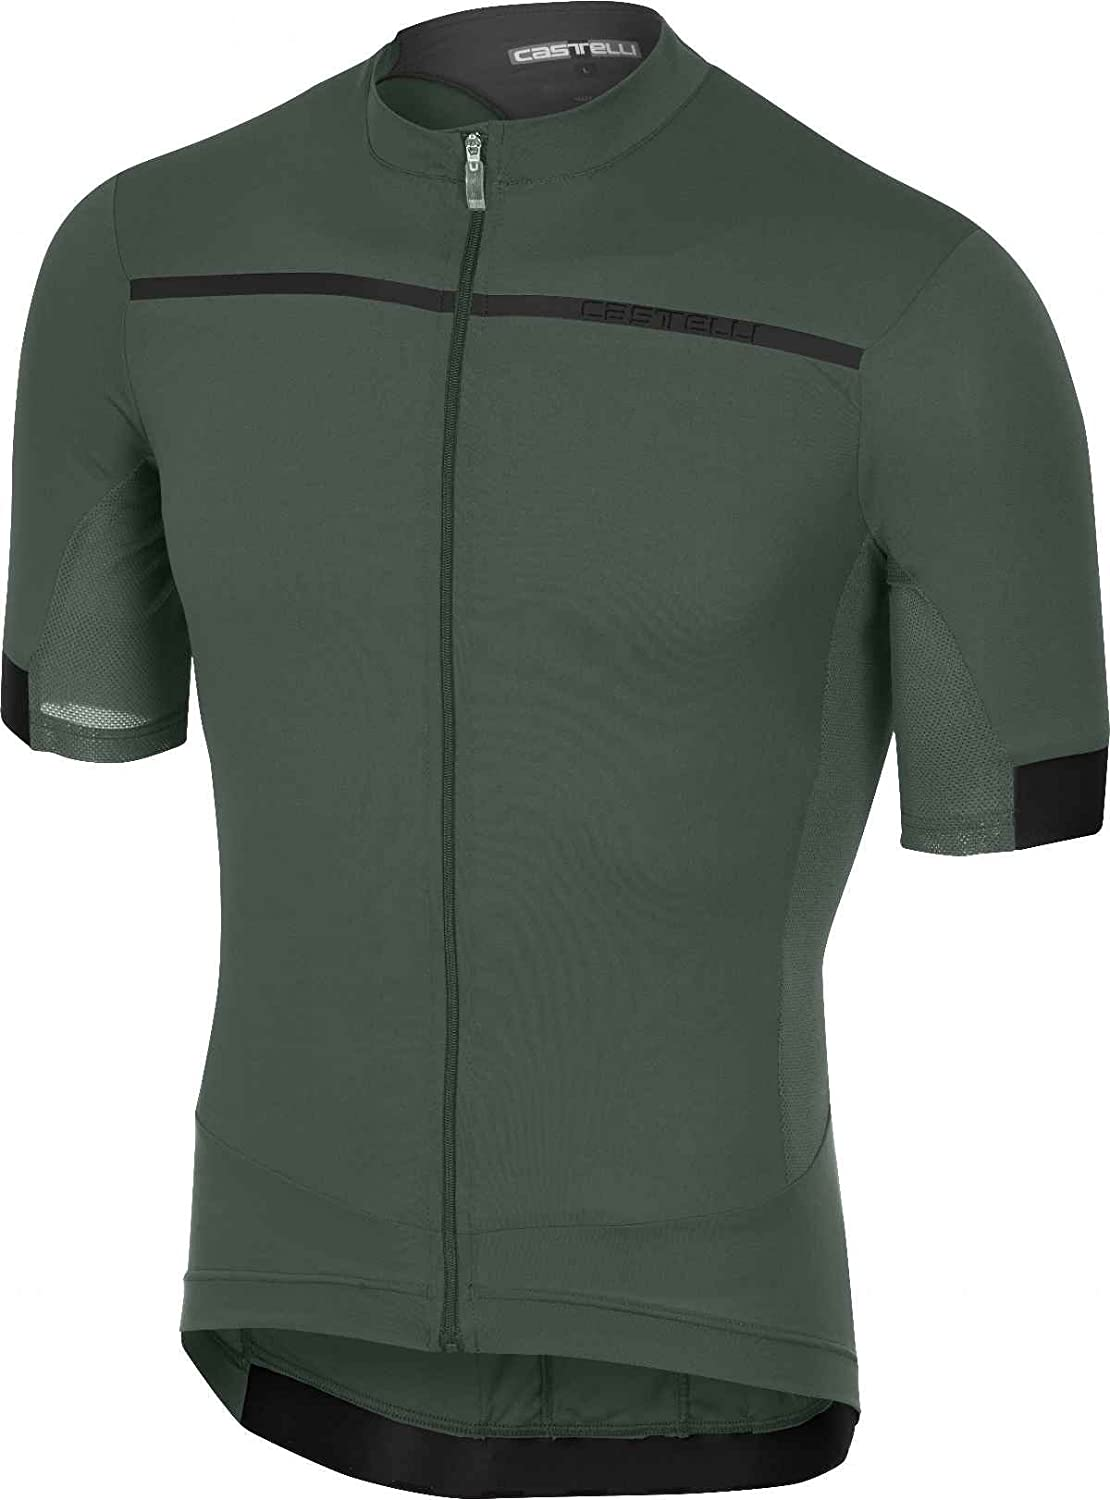 Castelli Forza Pro ジャージ B079C6X2QV X-Large|Forest Gray Forest Gray X-Large